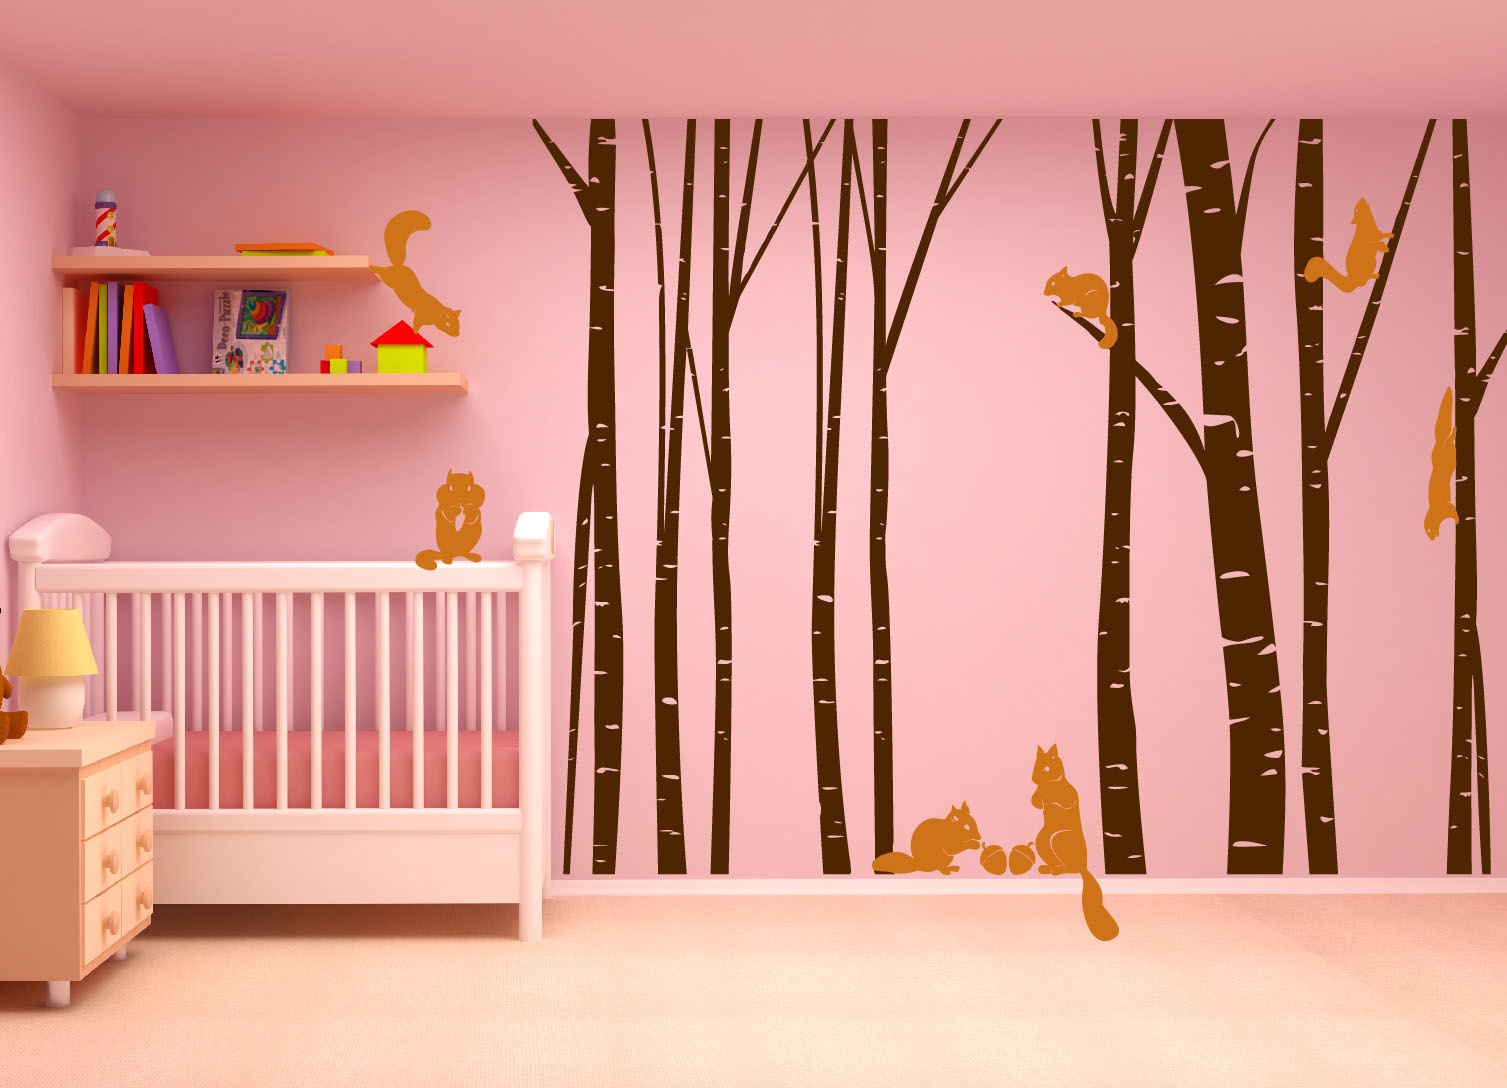 Birch Tree Forest Set Vinyl Wall Decal Nursert Art Squirrels - Vinyl wall decals birch tree